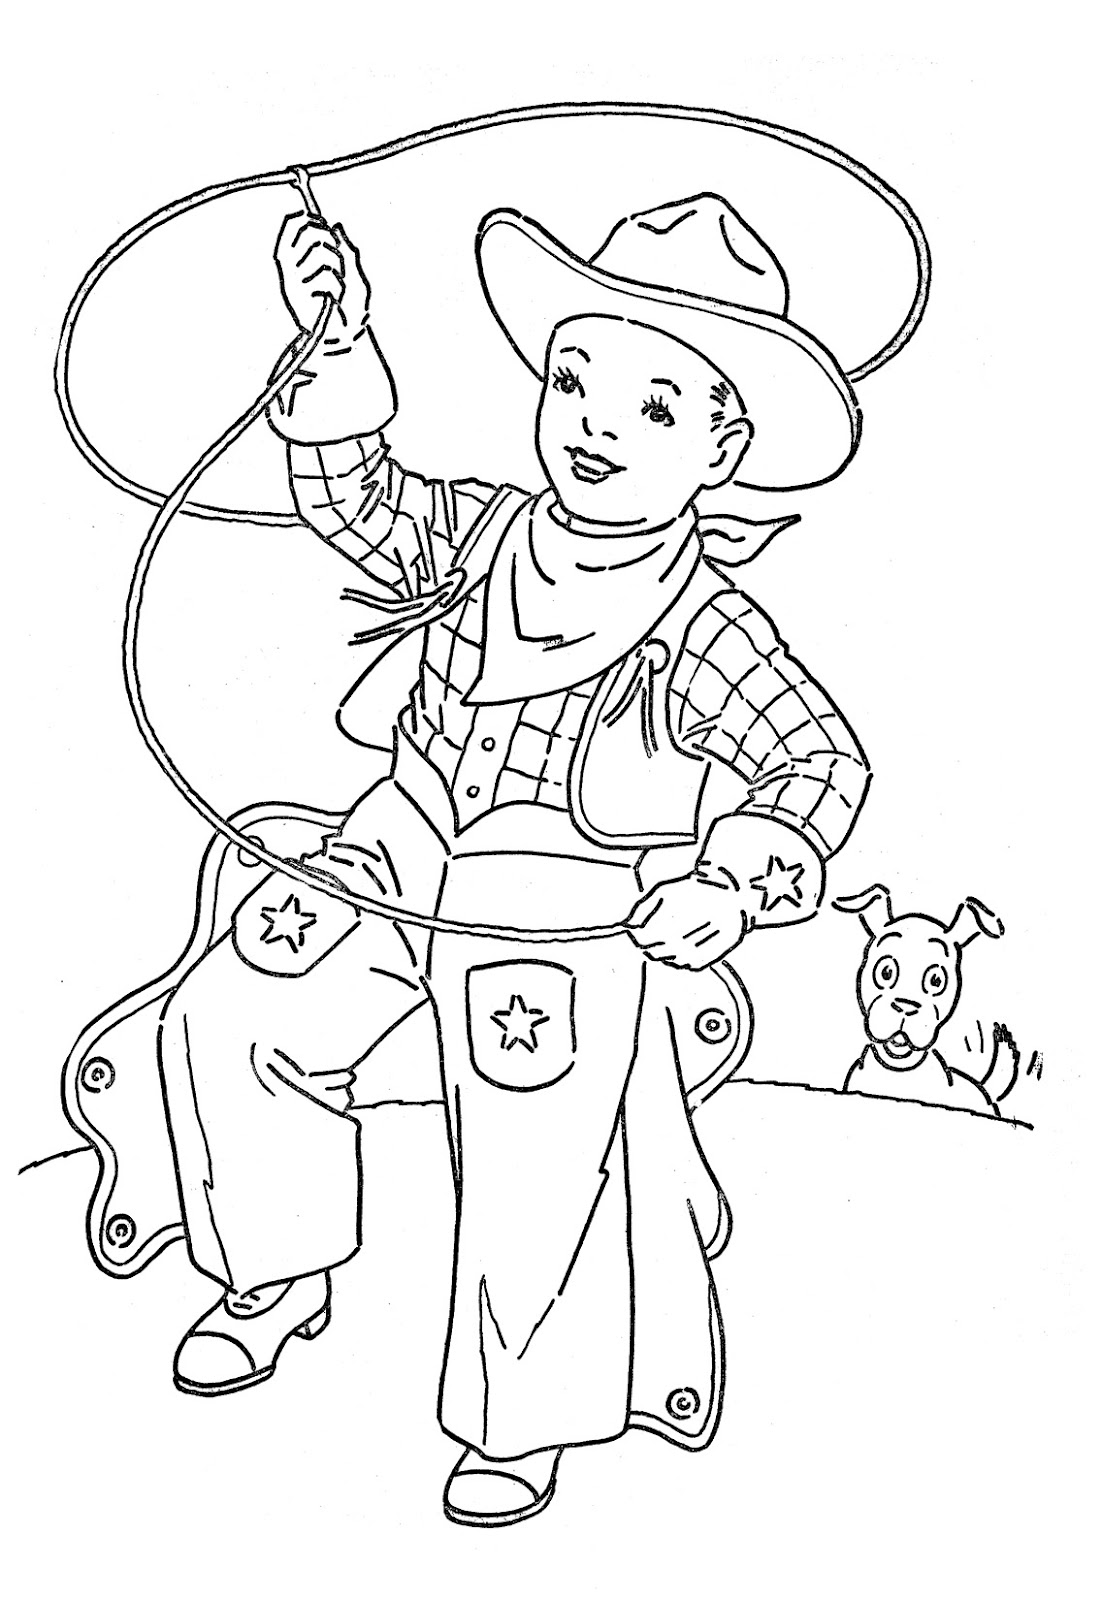 Vintage Clip Art - Cute Lil Cowboy - Digi Stamp - The ...